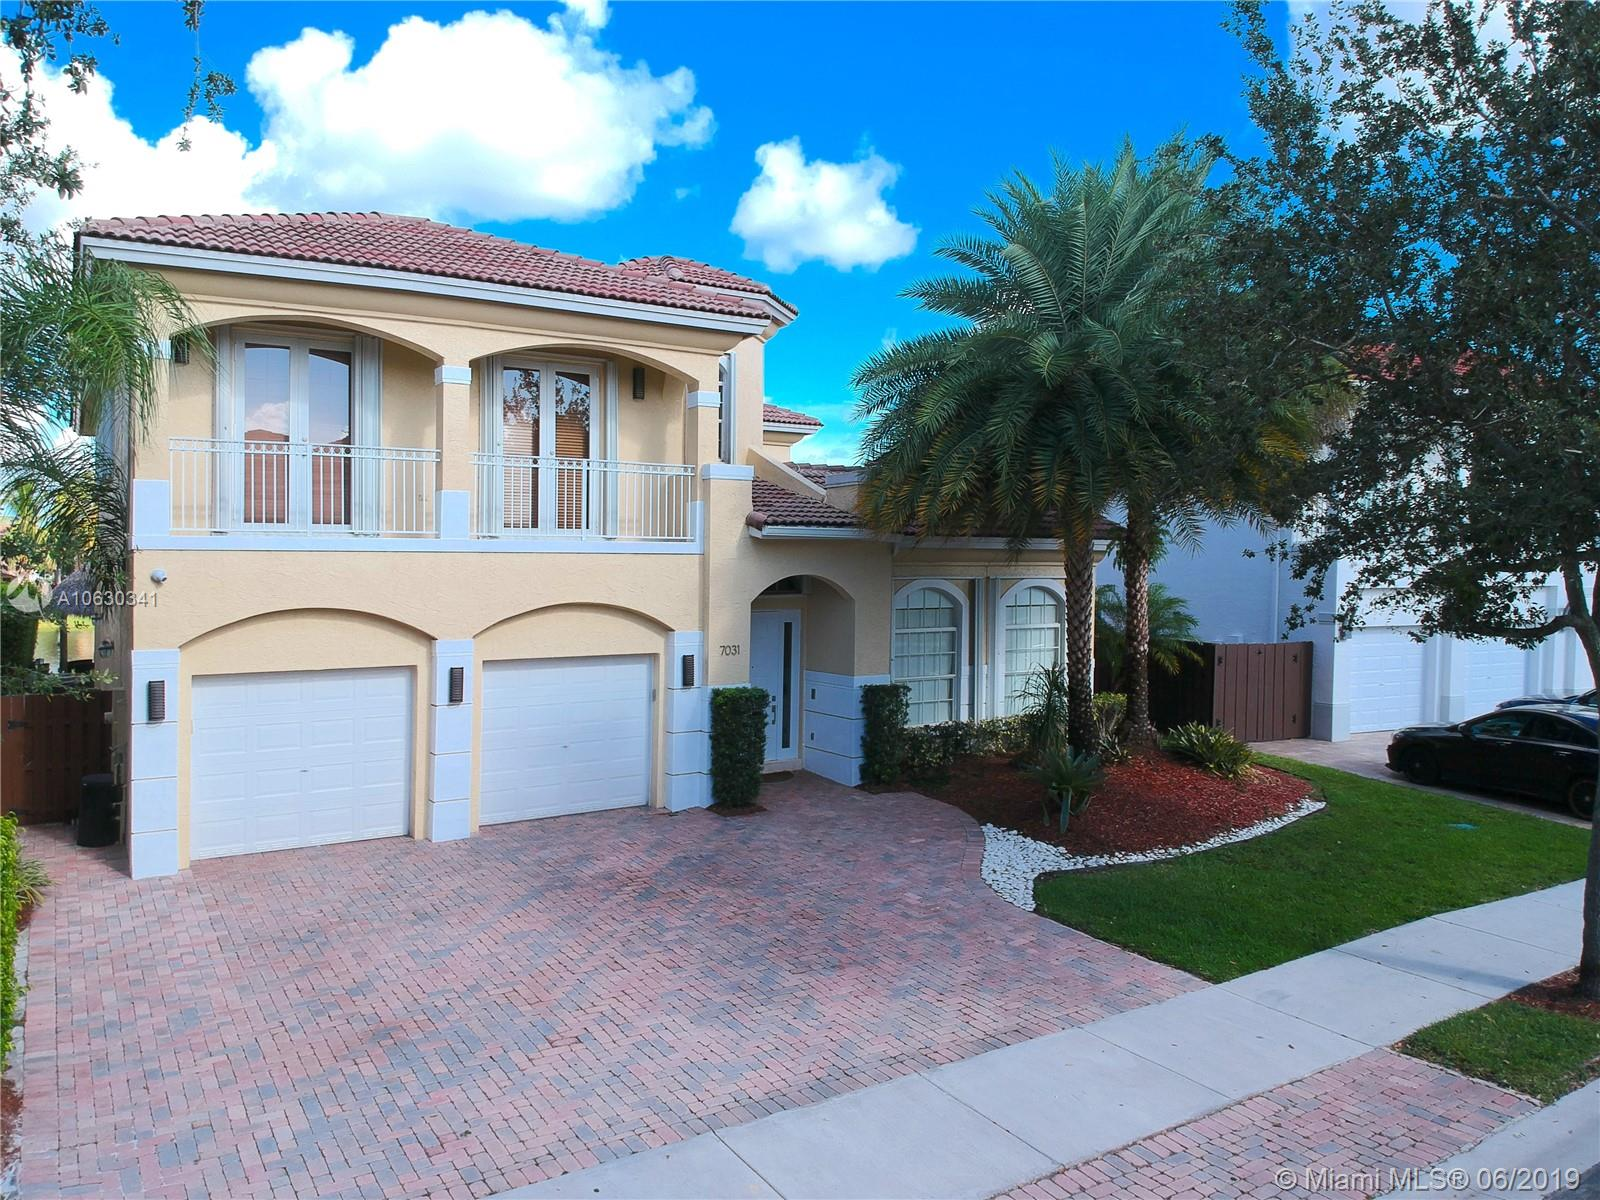 7031 NW 113th Ct, Doral, Florida